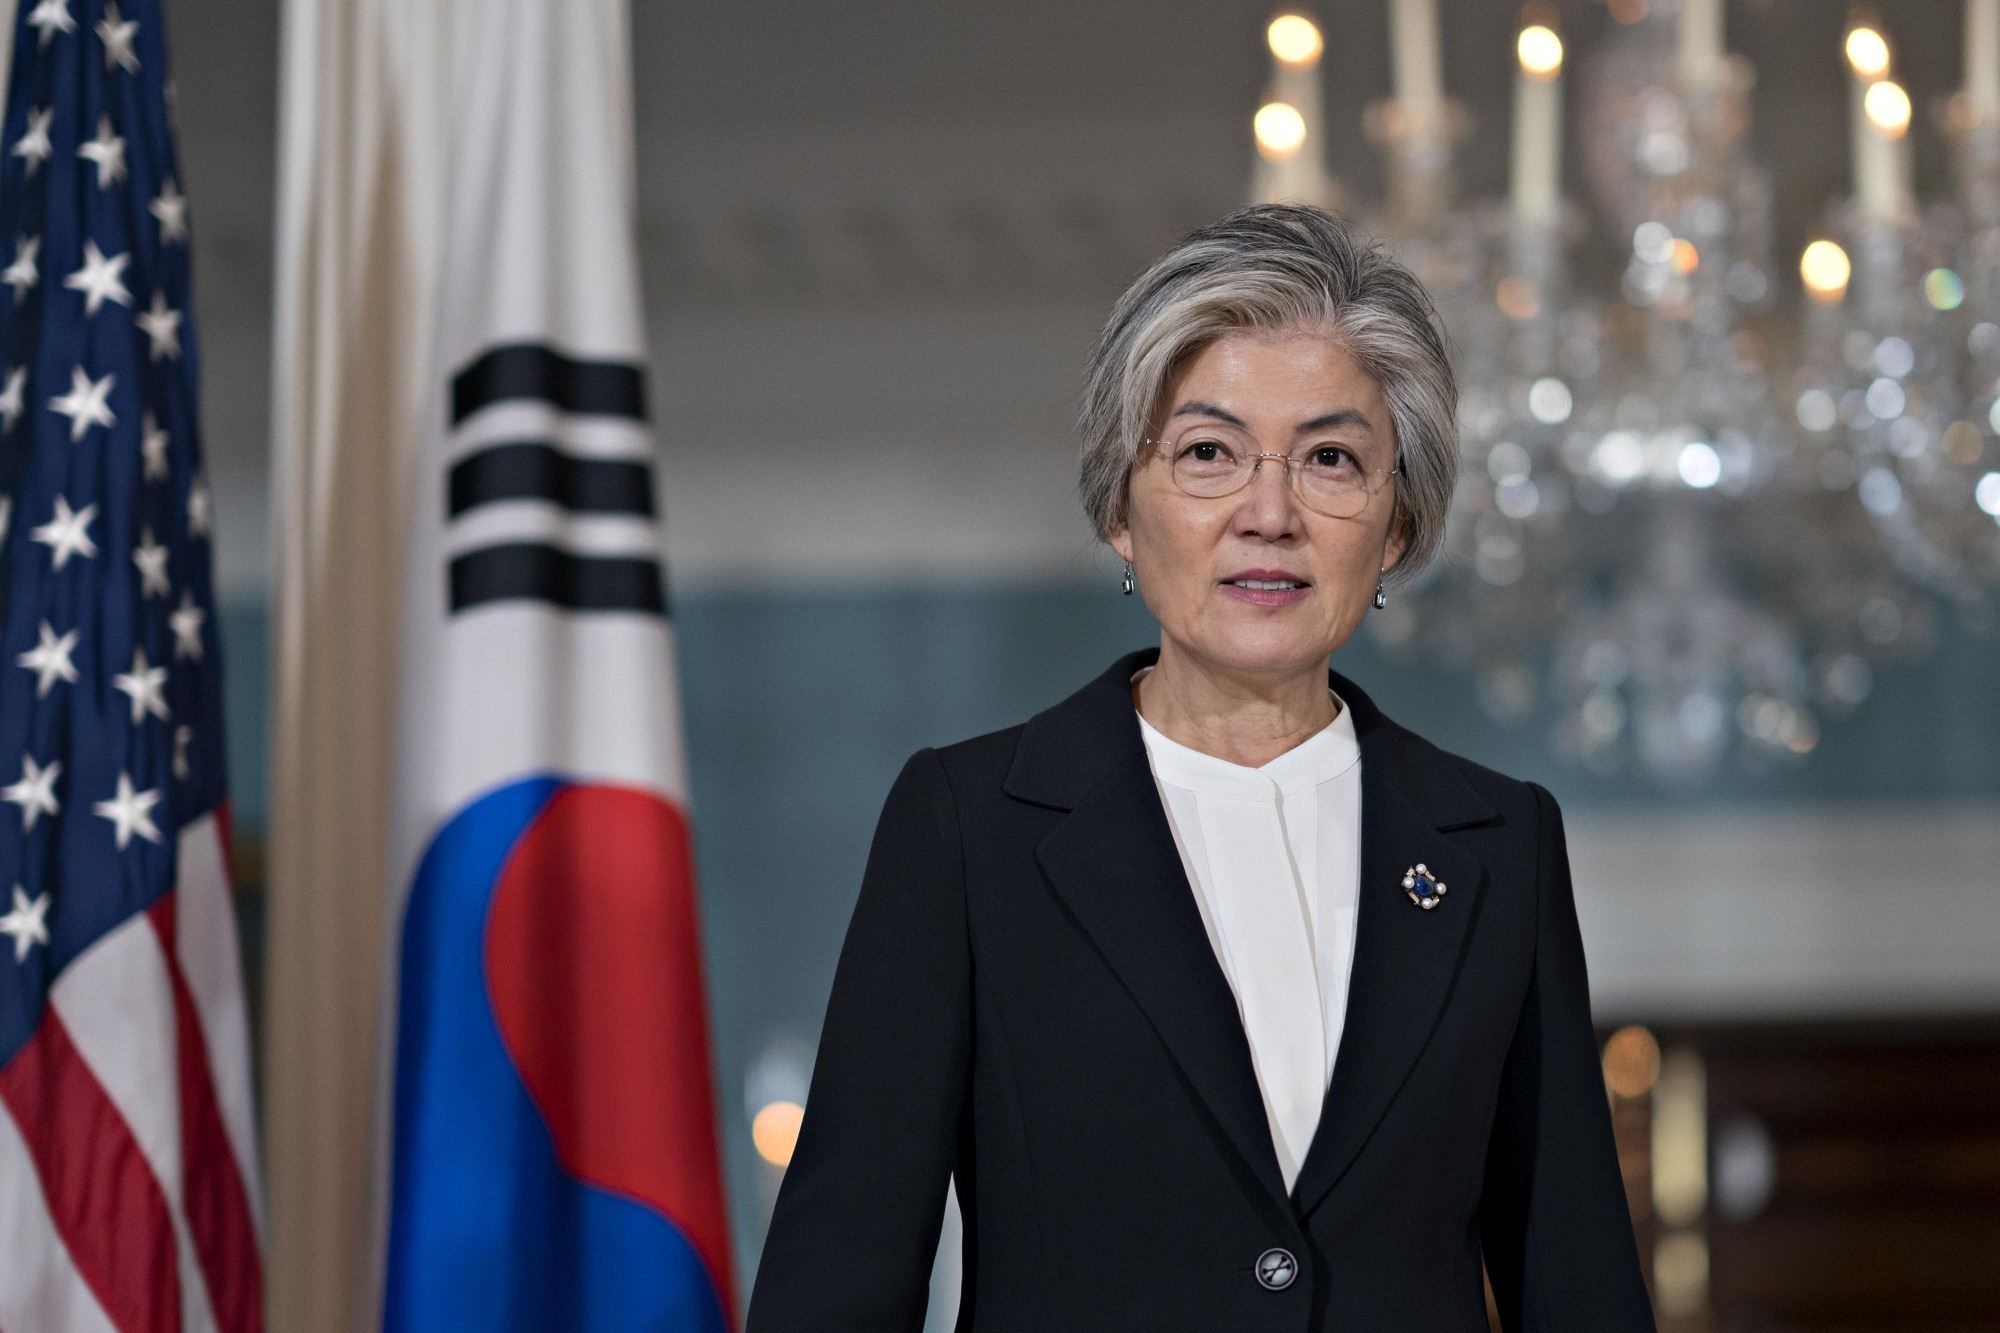 Kang Kyung-wha, South Korea's foreign minister, walks out for a photo opportunity at the State Department in Washington on Dec. 6, 2018. | BLOOMBERG